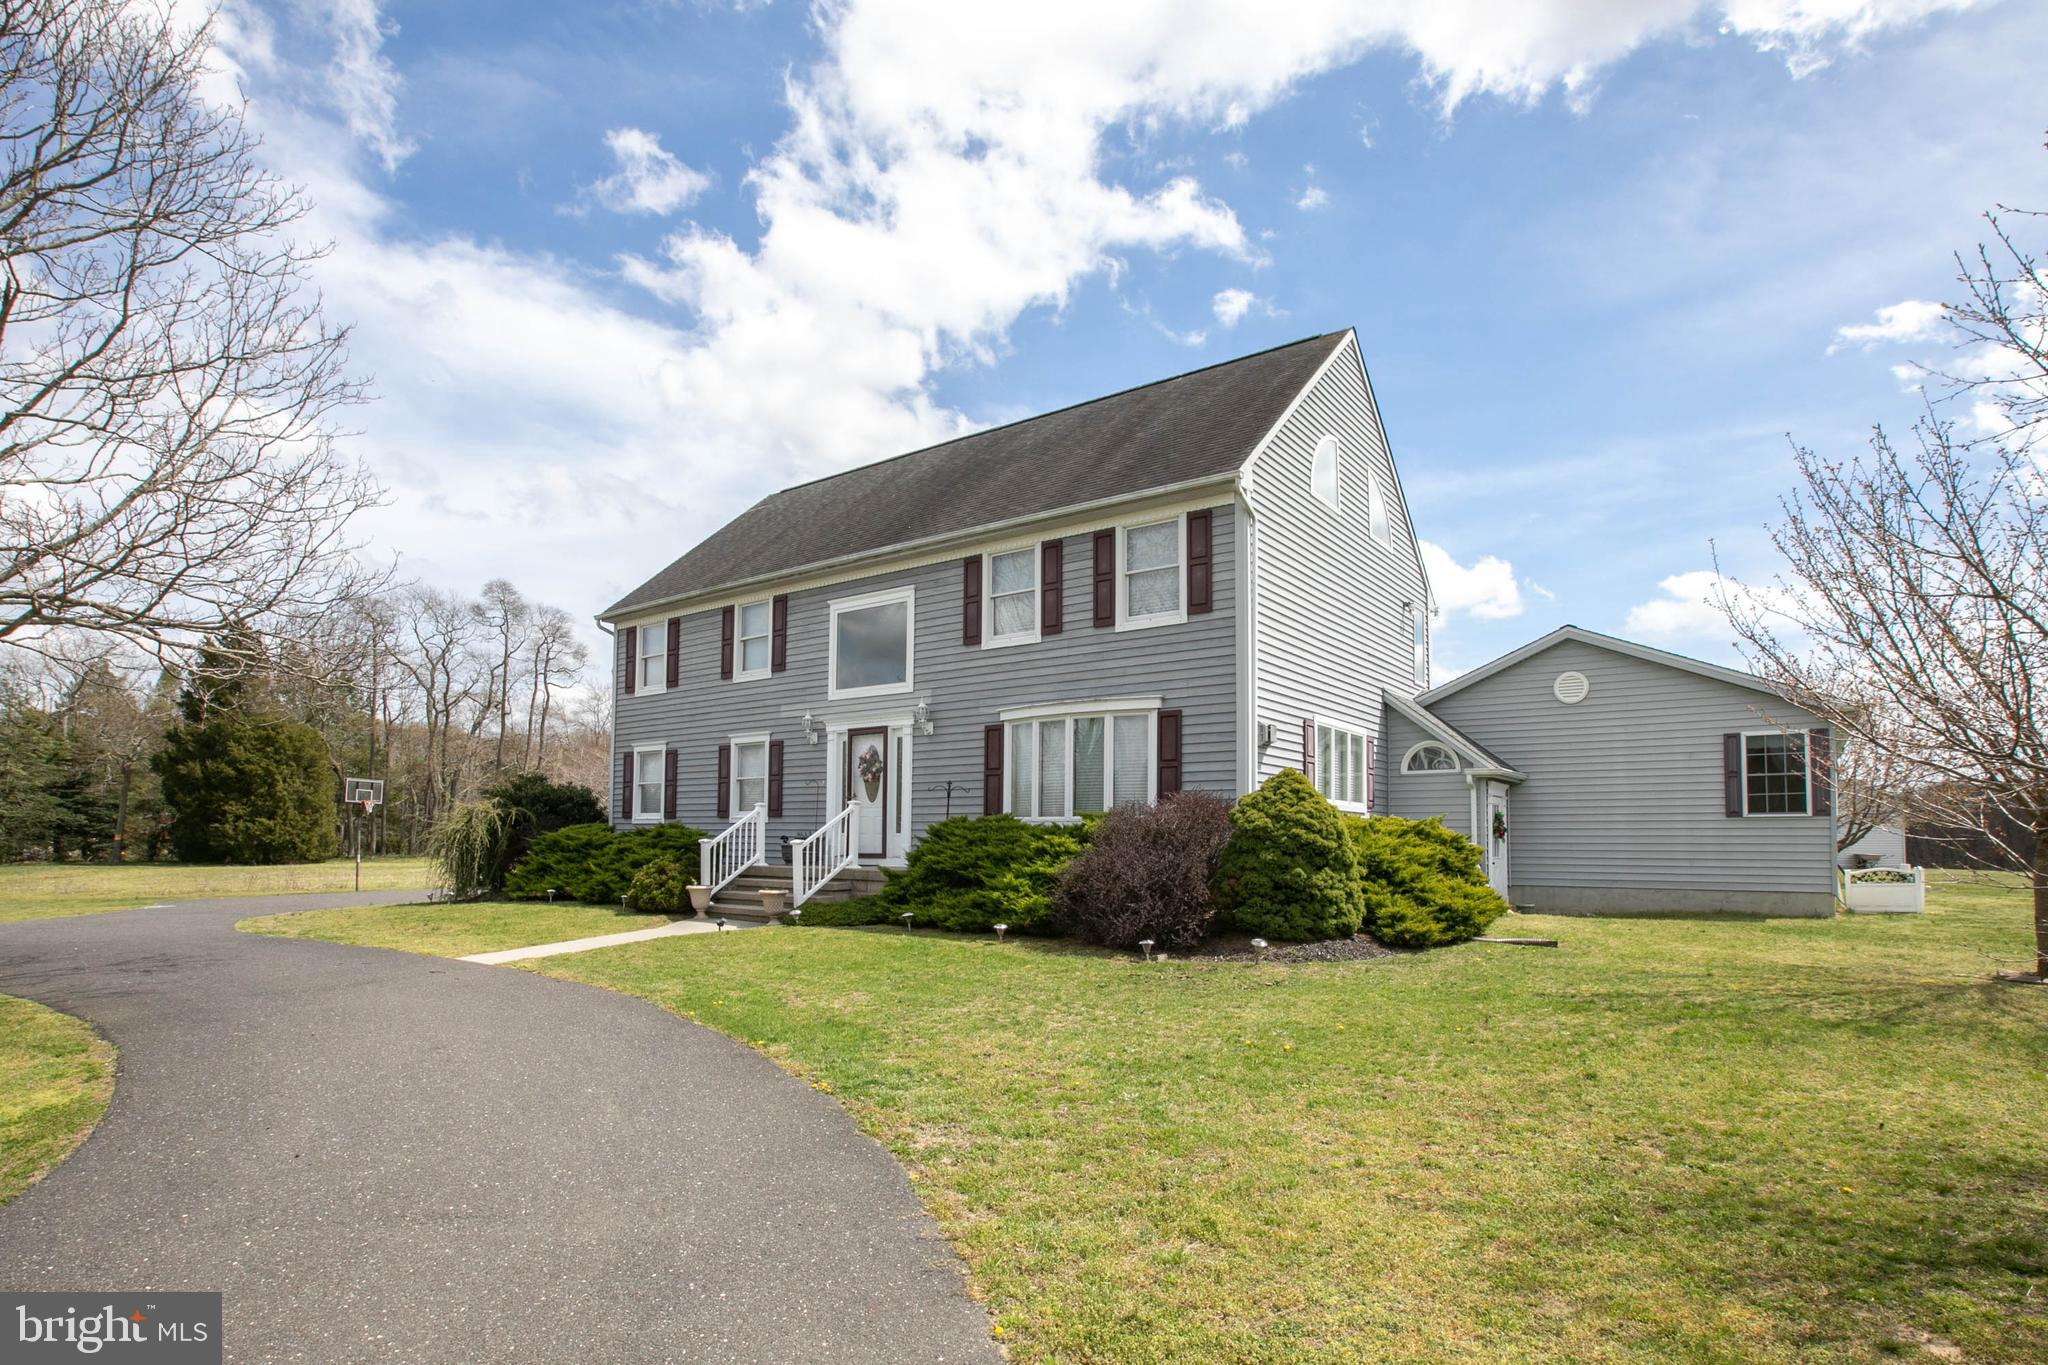 1452 ELLIS MILL ROAD, MONROEVILLE, NJ 08343